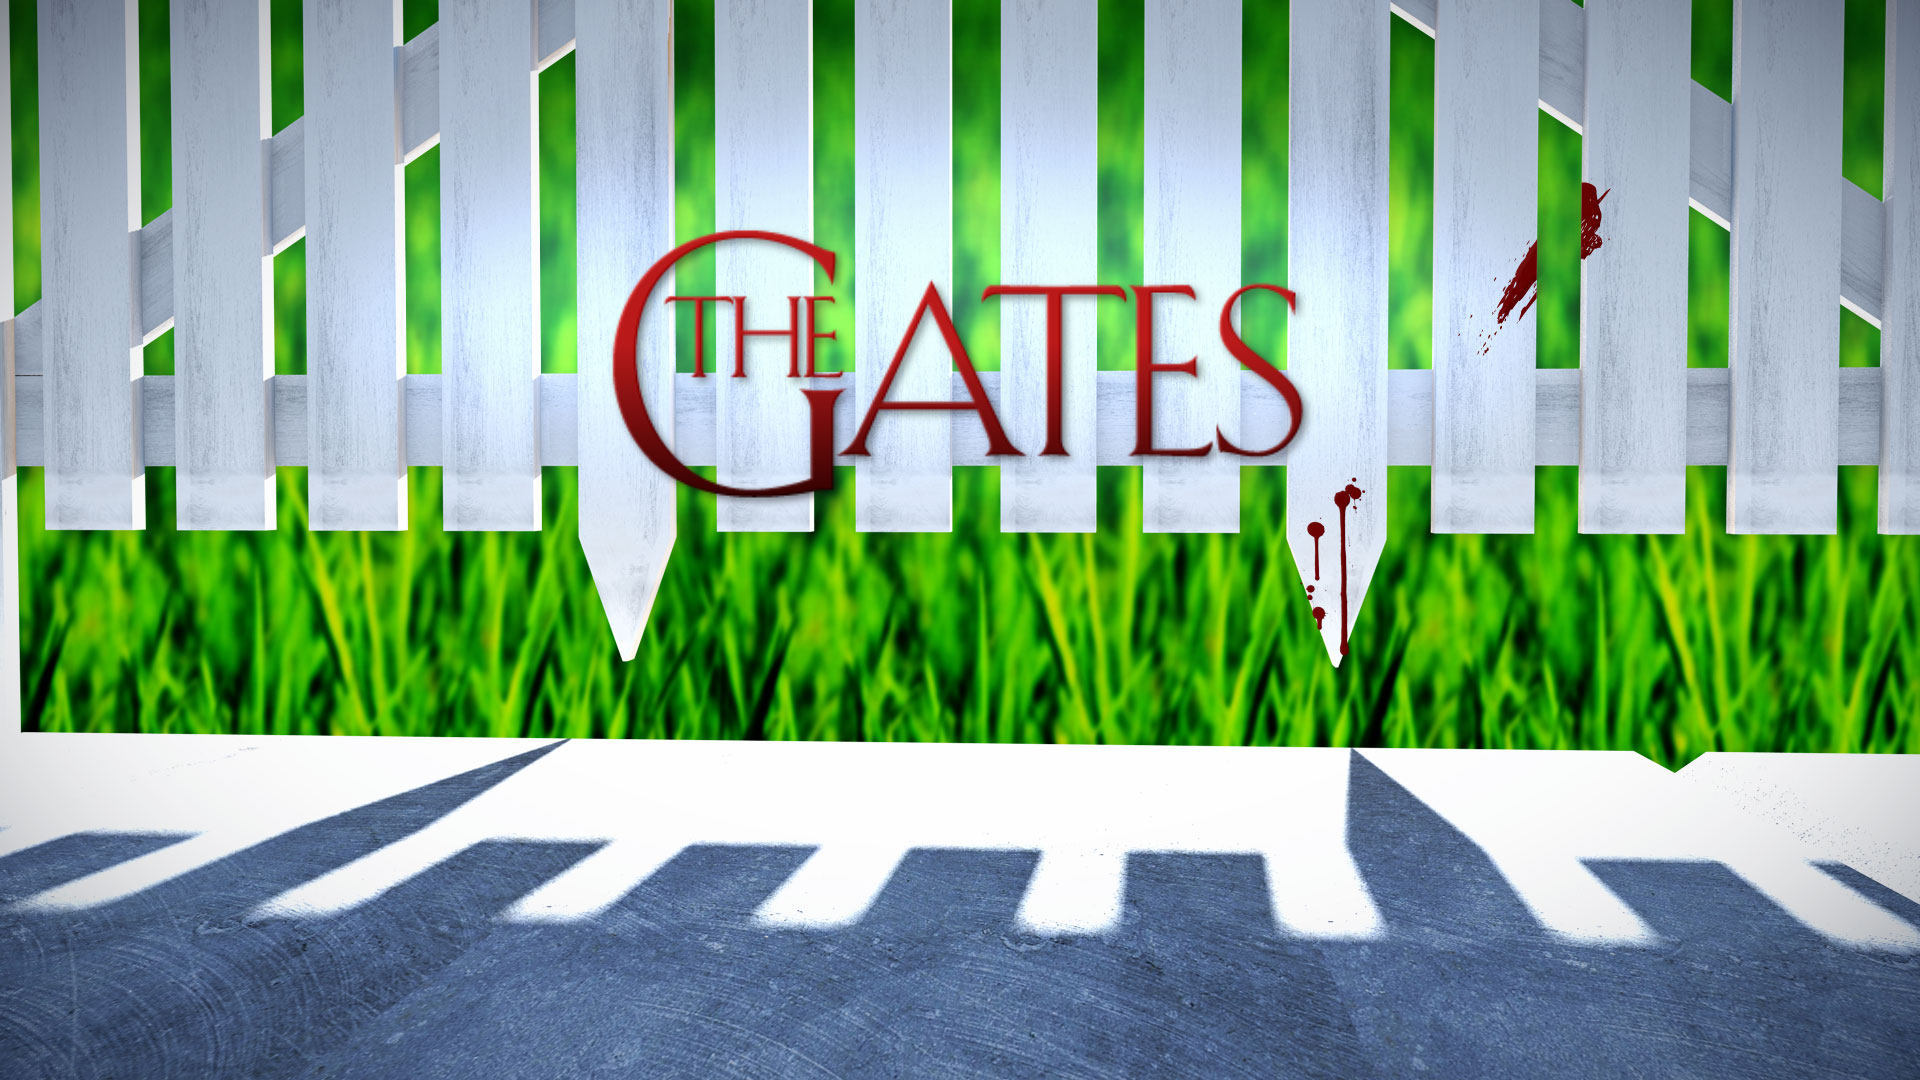 GATES_Logo02_PicketFence_mm_v4+(0.00.01.00).jpg